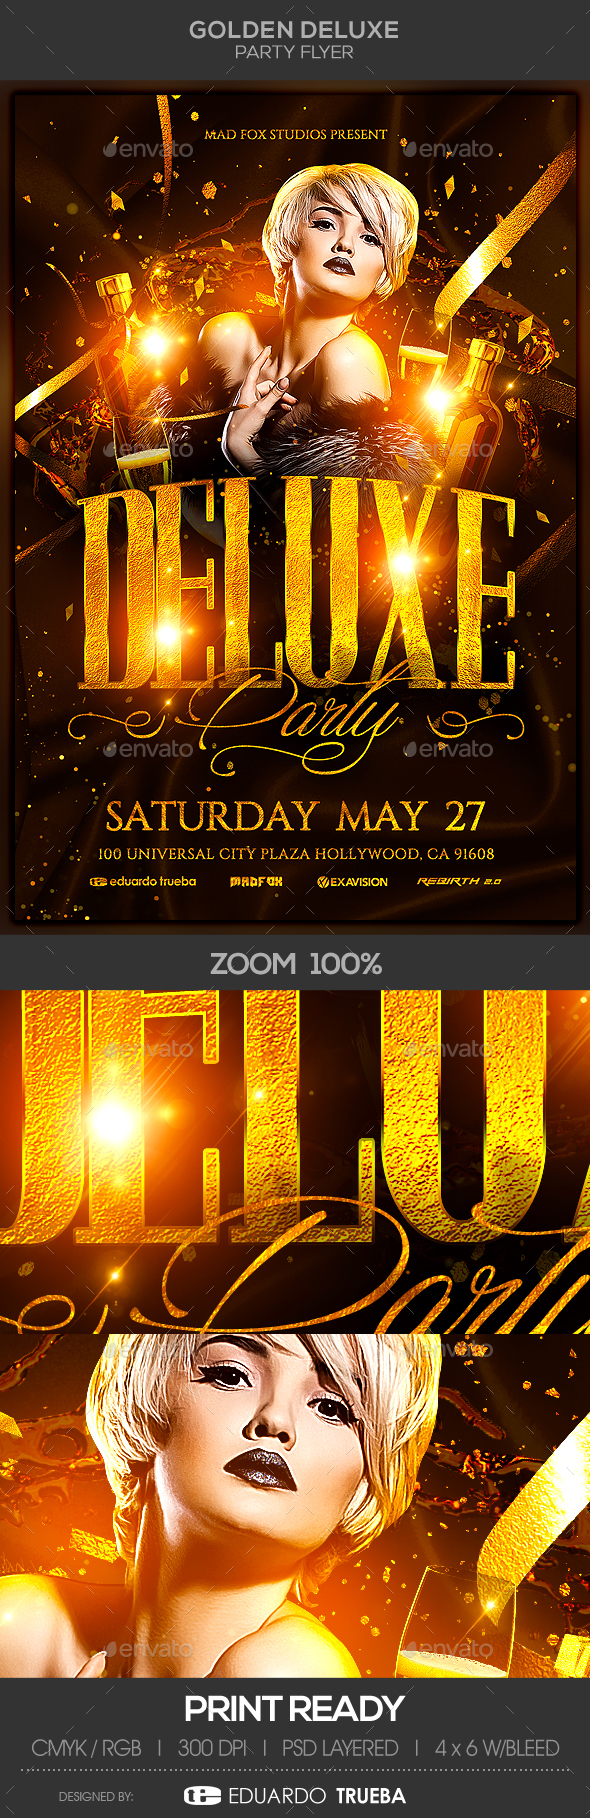 GraphicRiver Golden Deluxe Party Flyer 20989579